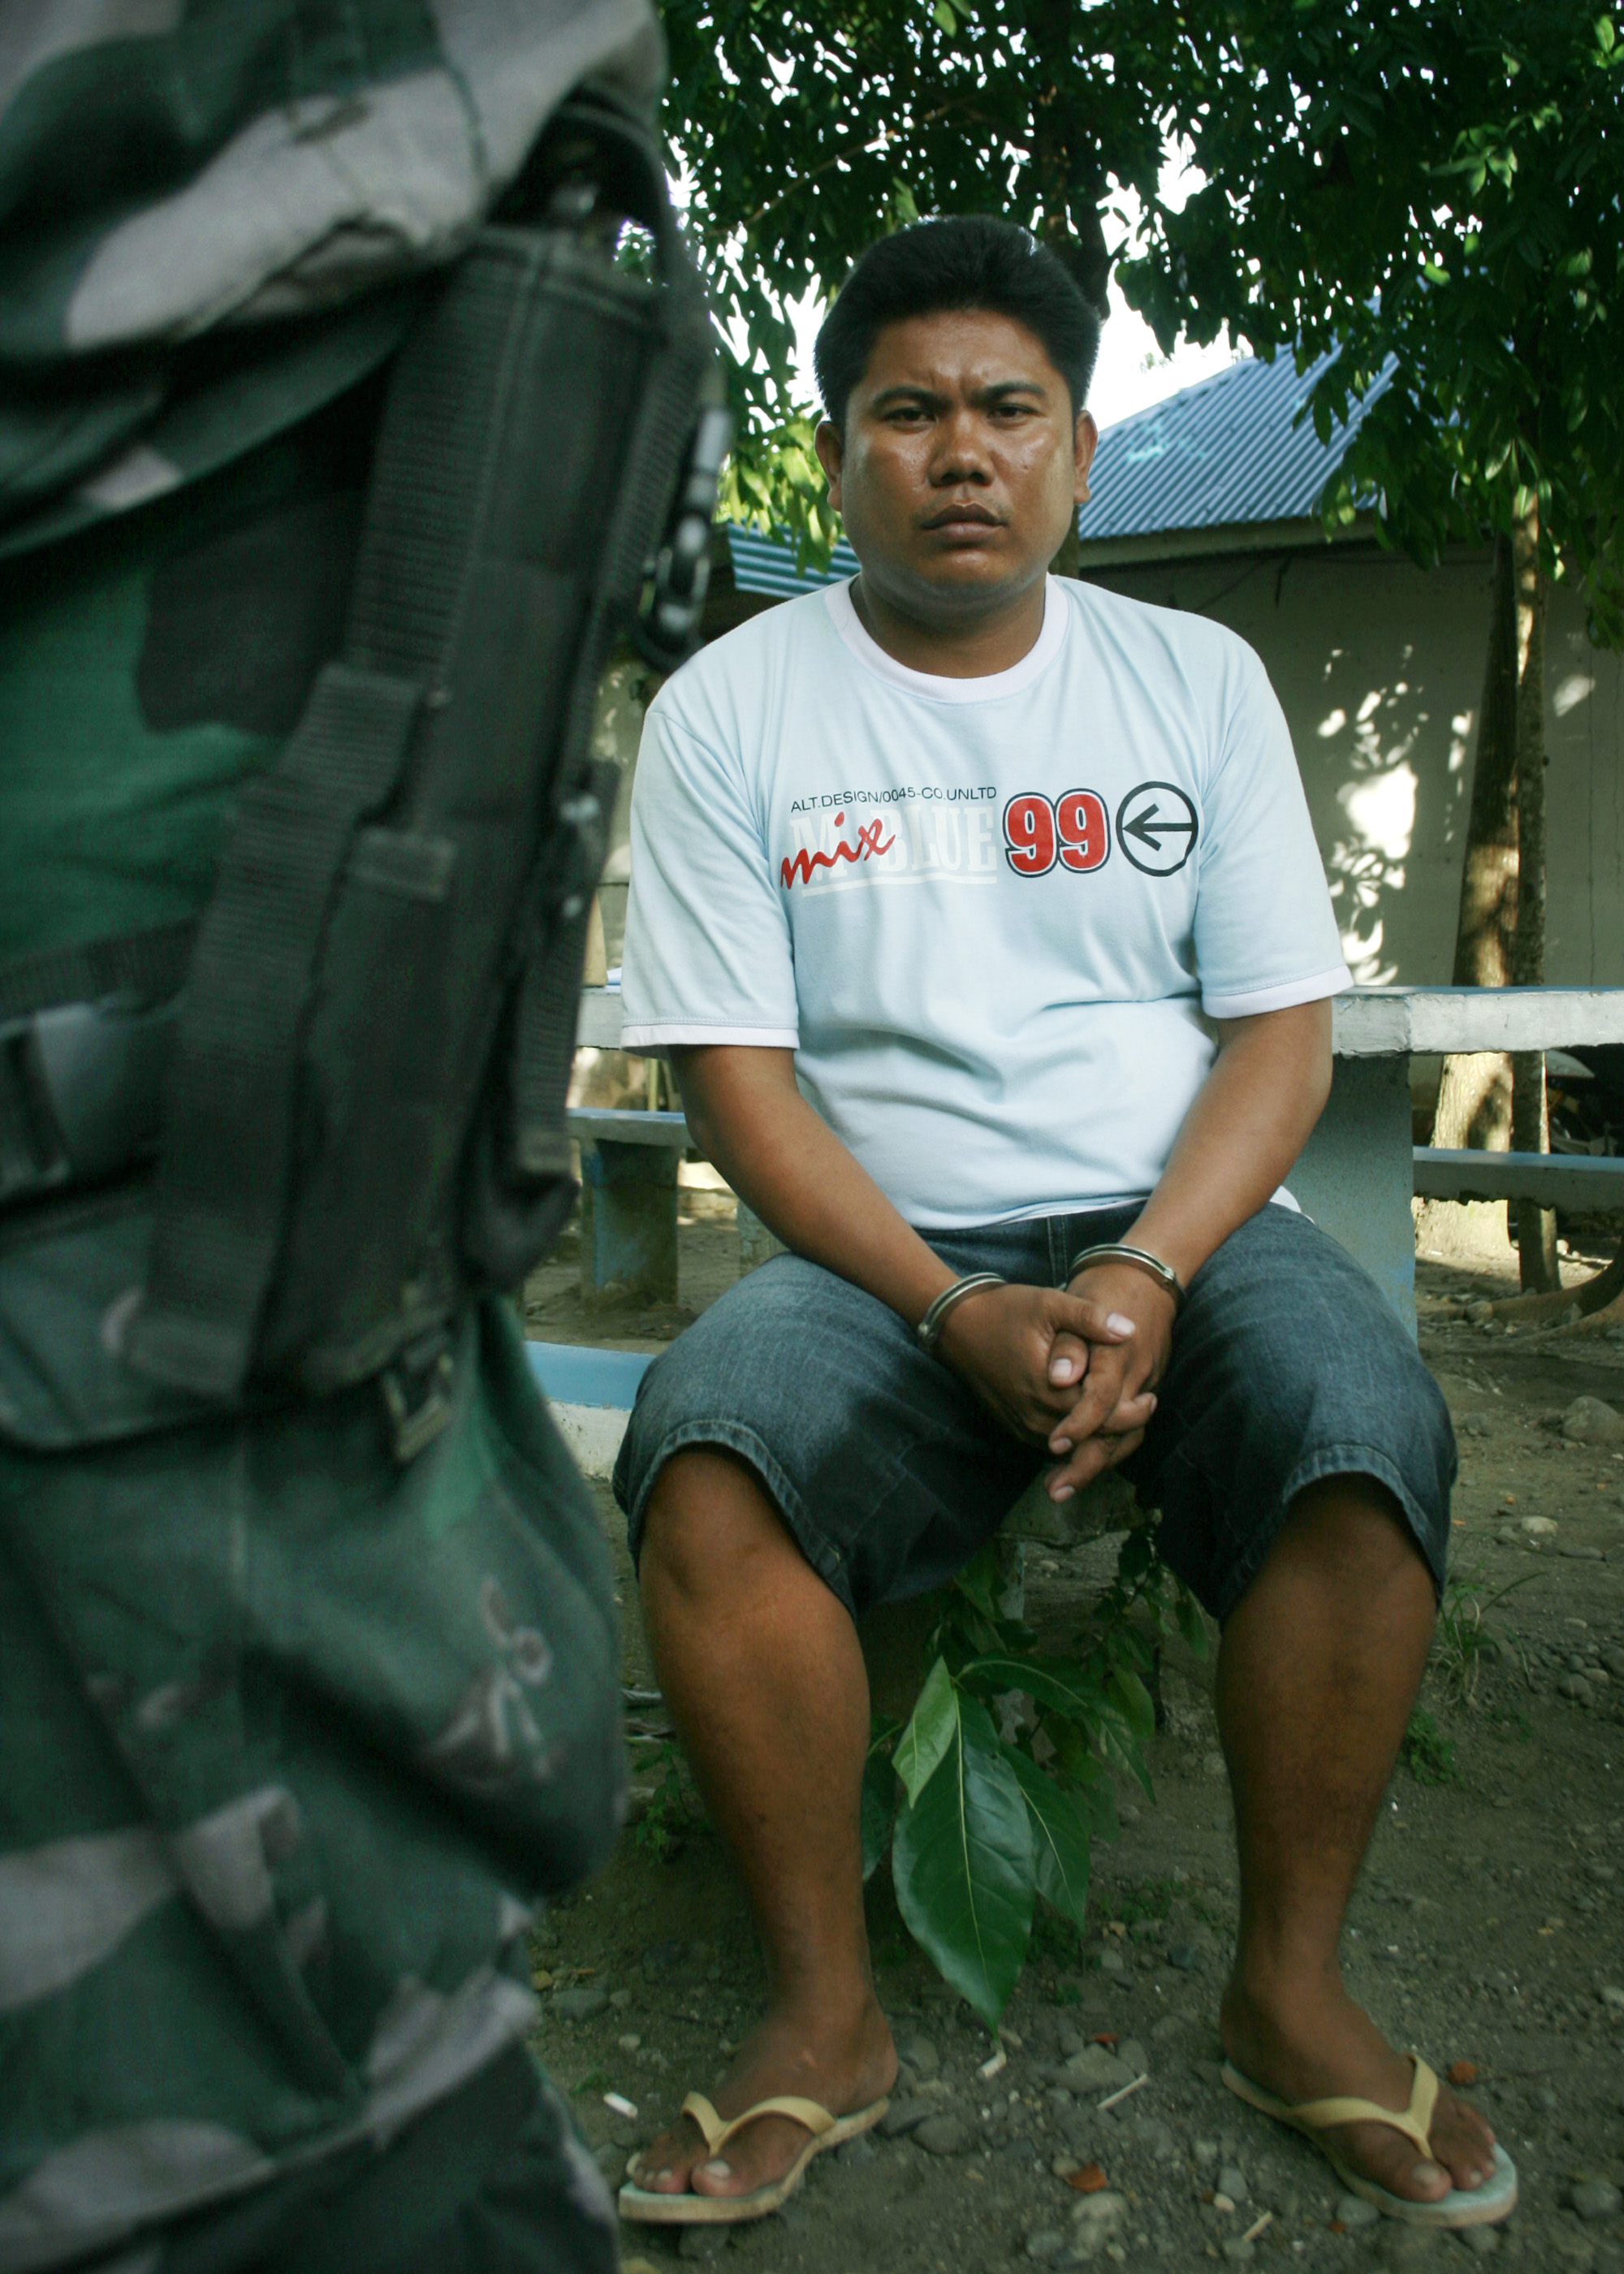 A police officer guards Rammy Moquete, one of Iloilo province's most wanted persons, after he surrendered Monday. (Photo by Tara Yap)